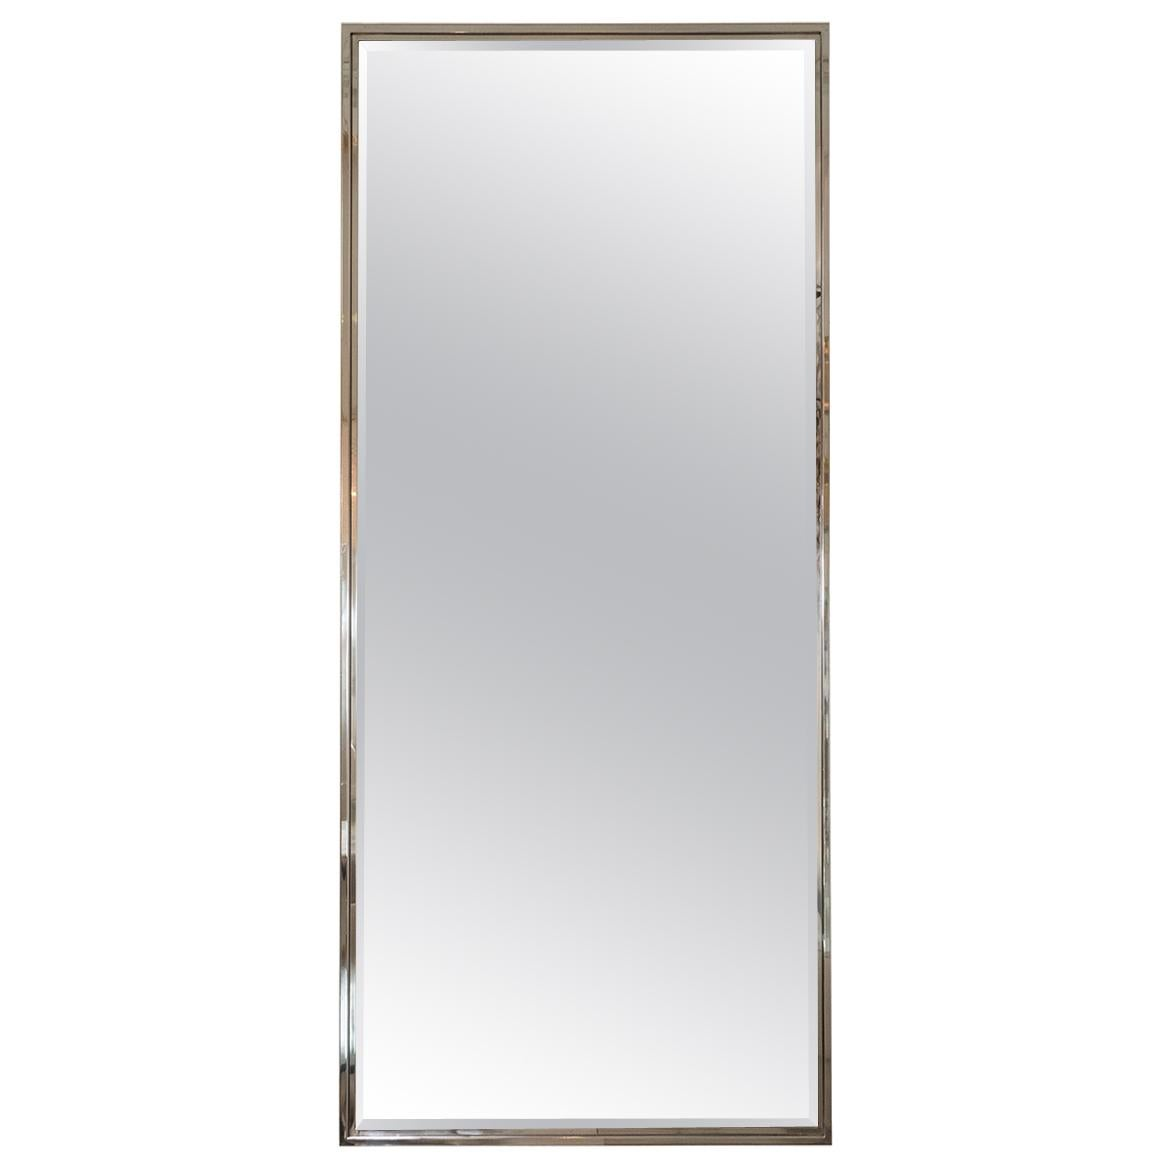 Rectangular Mirror with Polished Nickel Surround